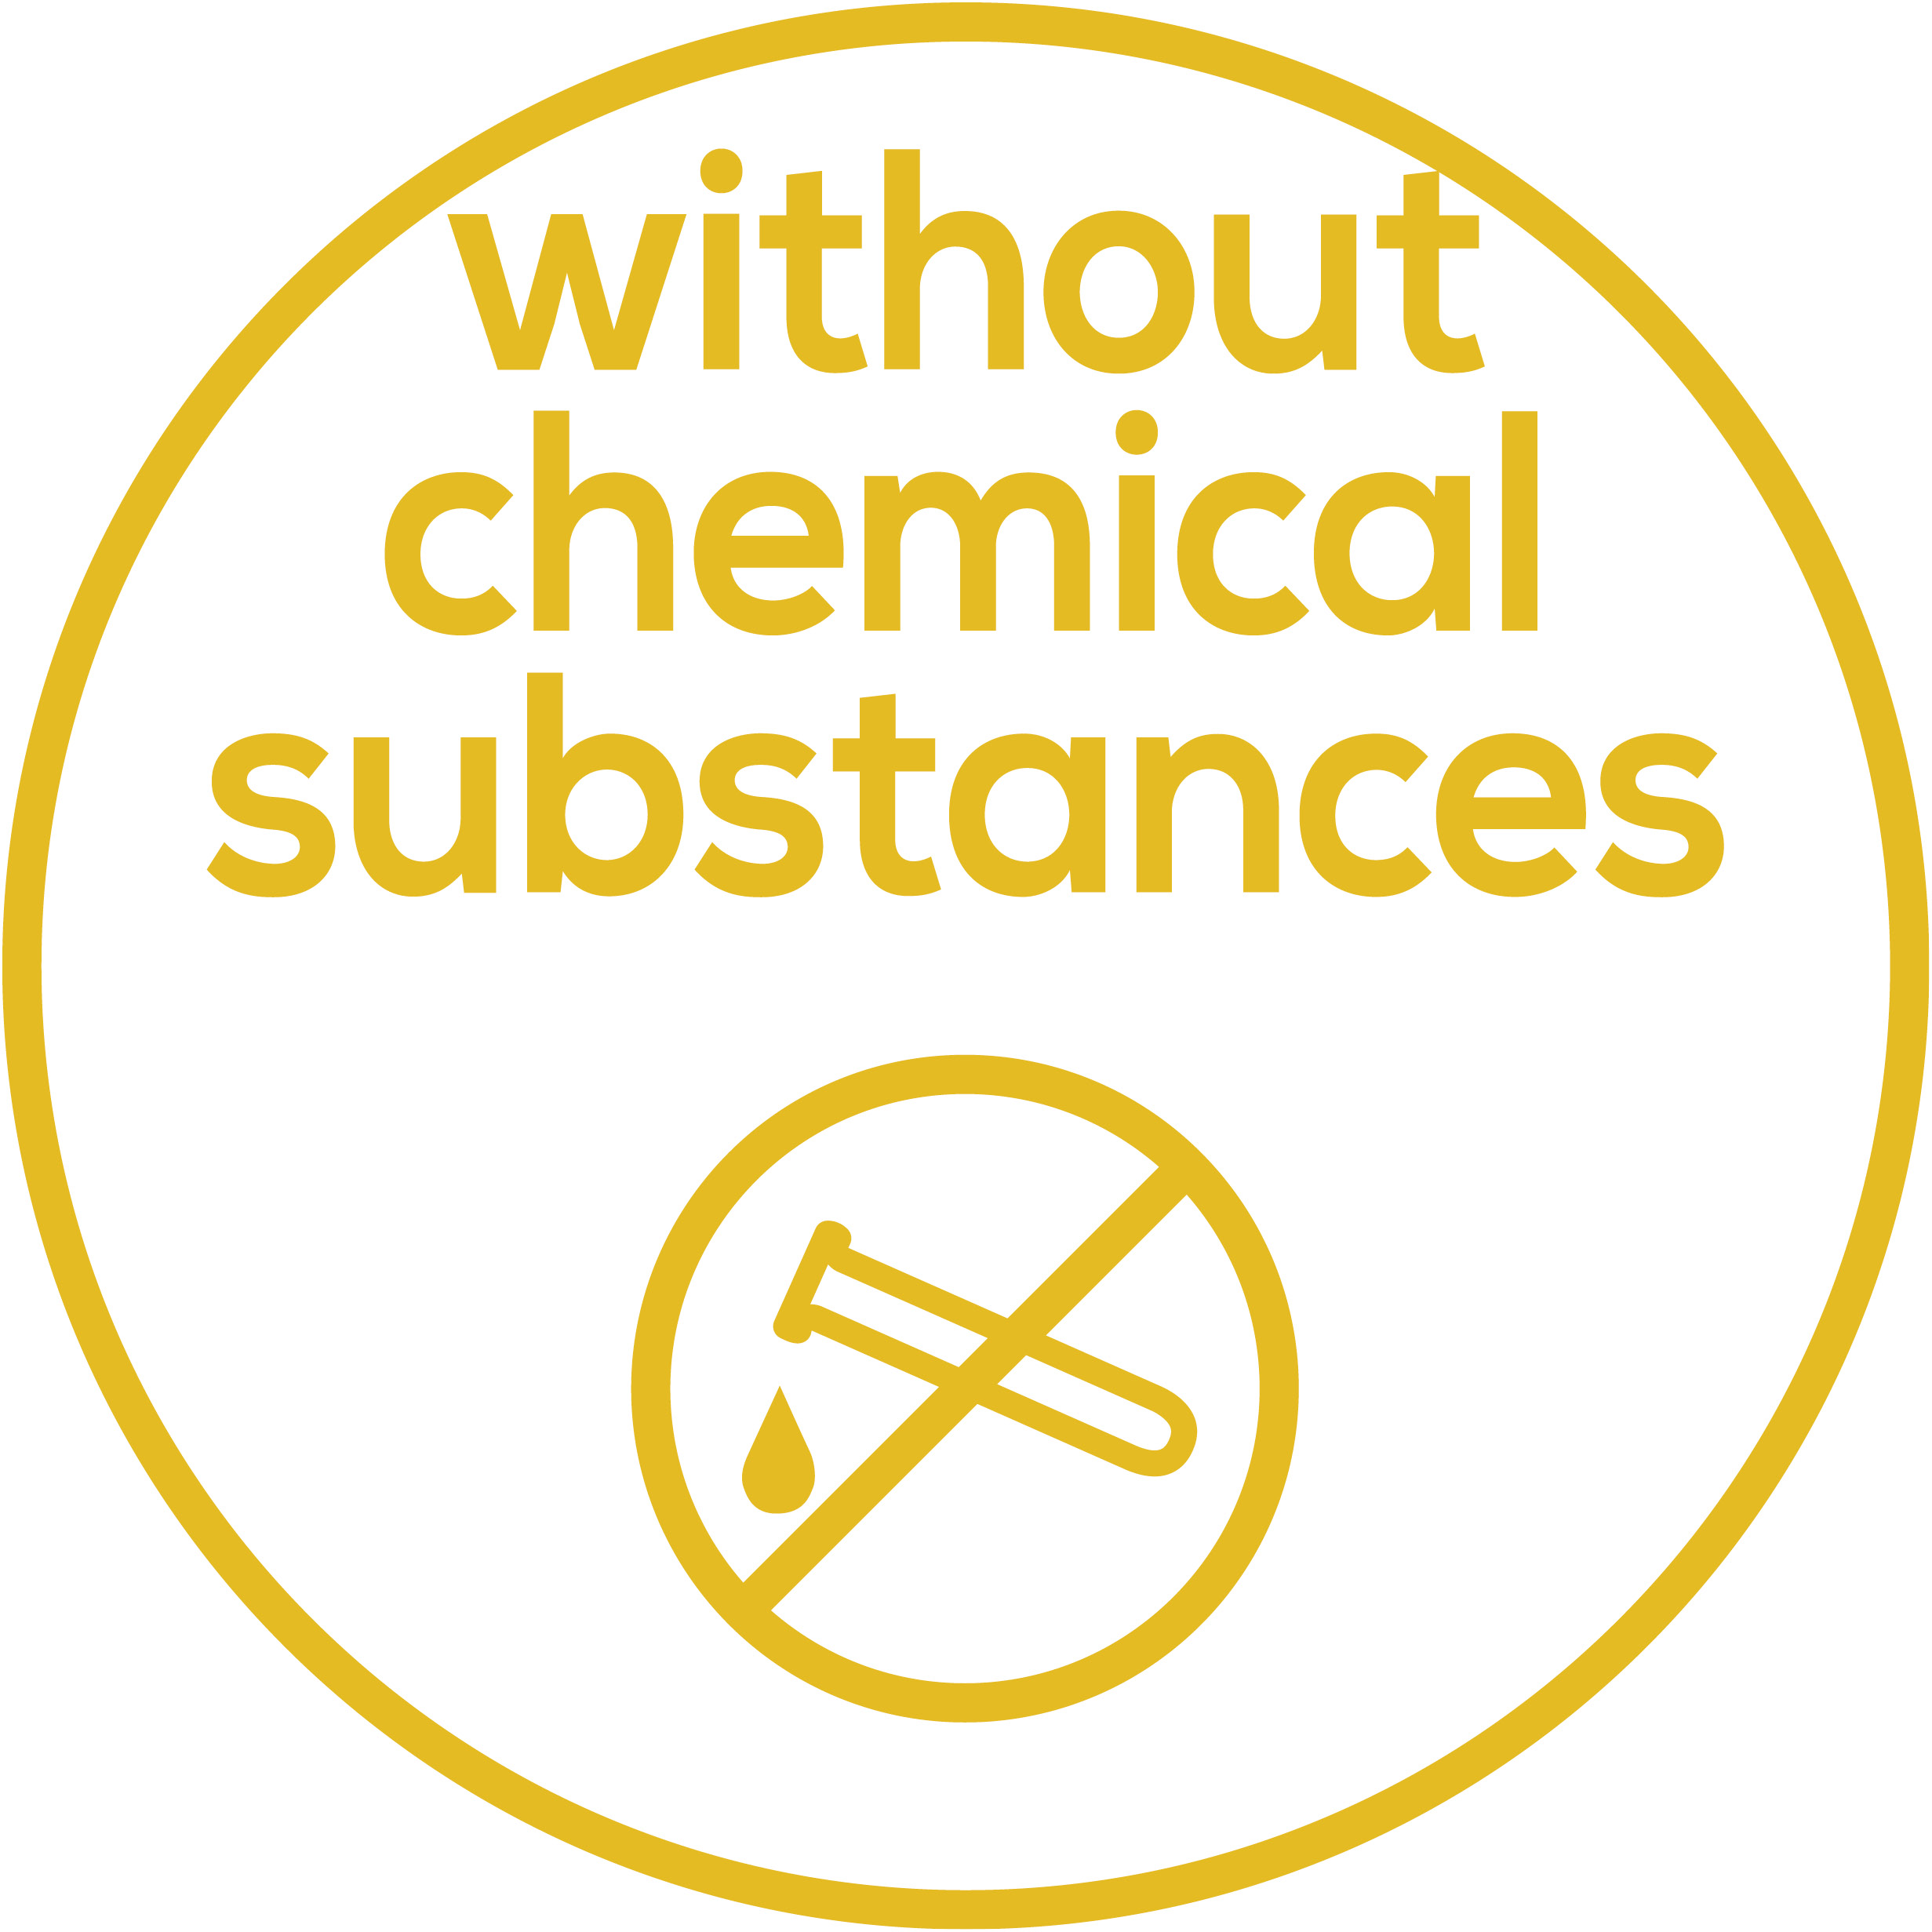 Without the use of chemicals